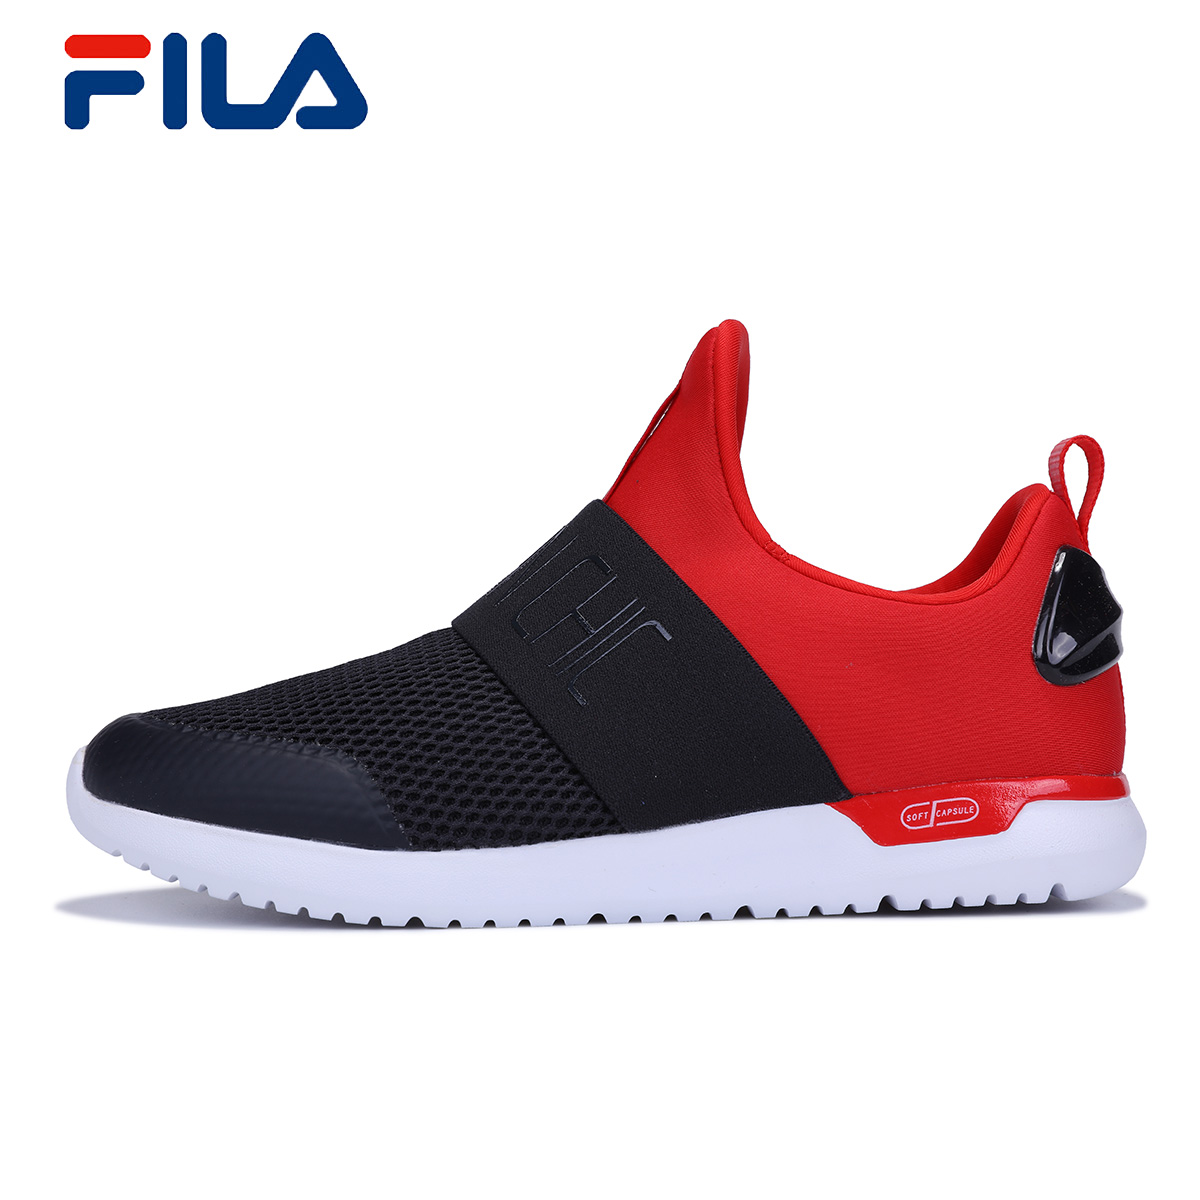 fila shoes lightbox moreview · lightbox moreview ... GNACZYB